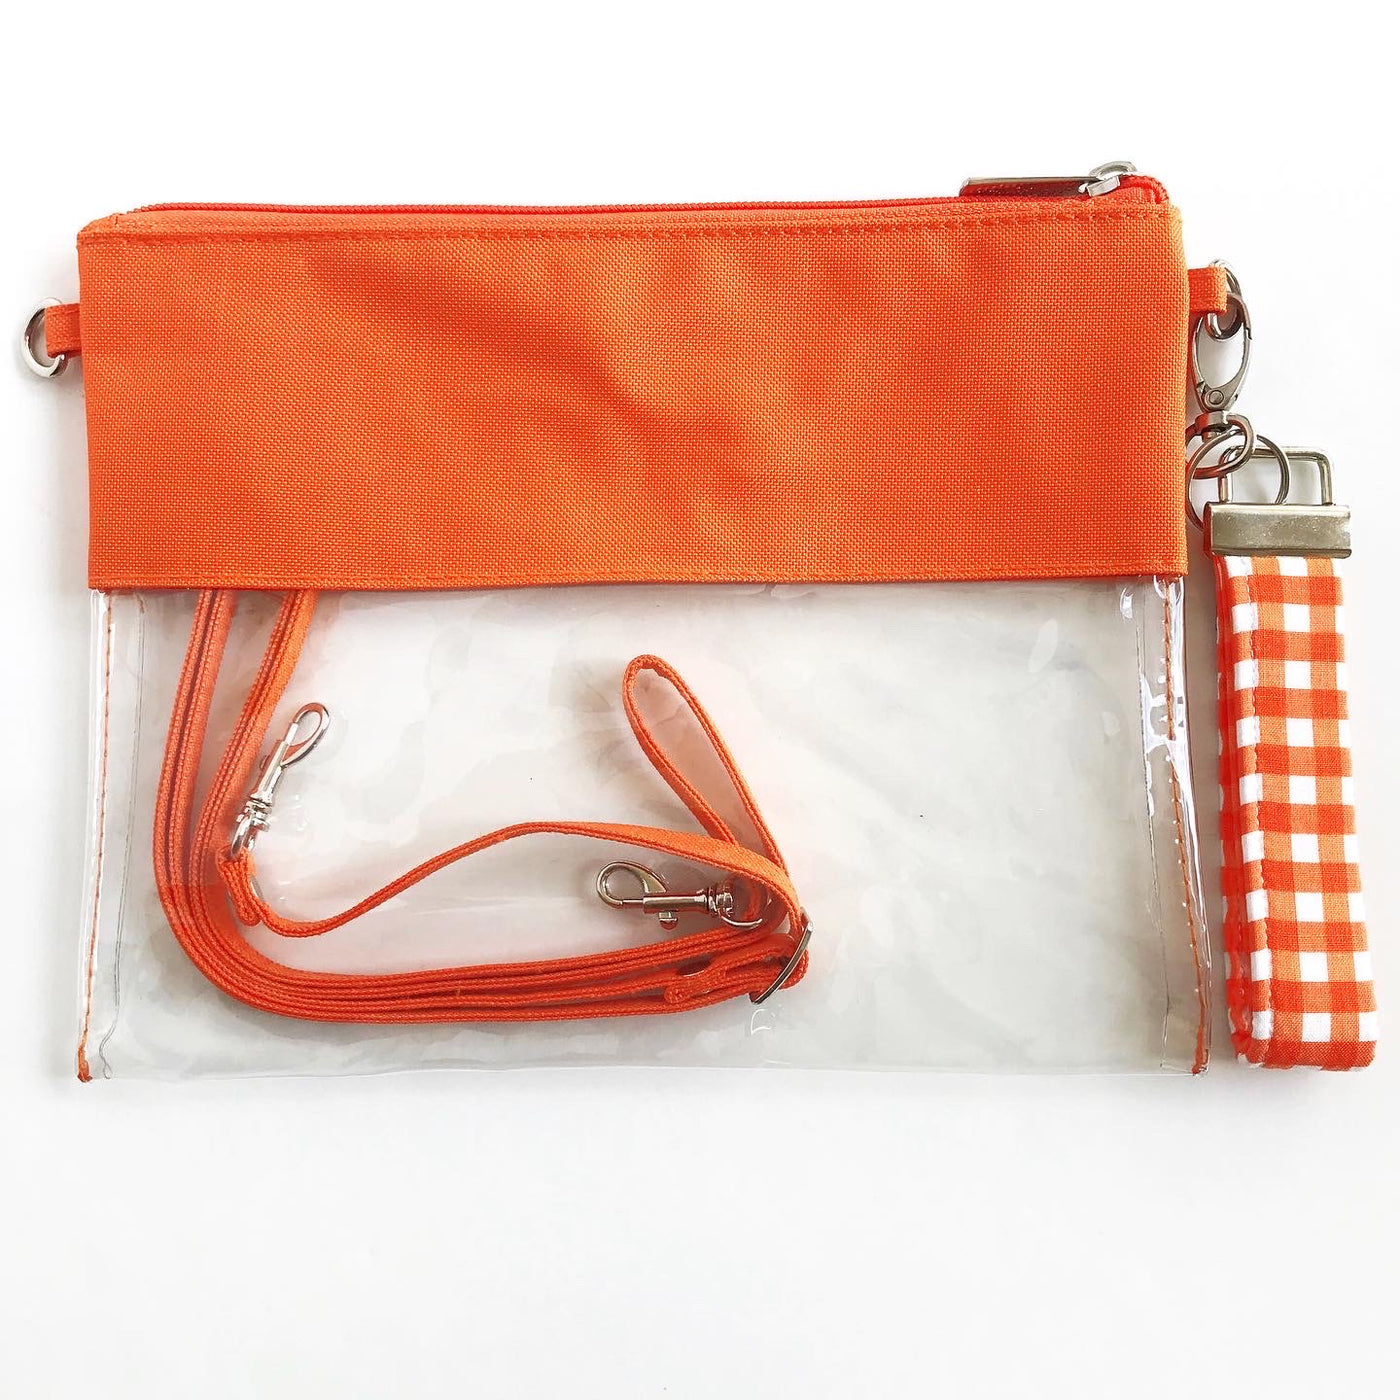 WRISTLET SET|| ORANGE CLEAR BAG, THE CLIP + ORANGE AND WHITE CHECKERBOARD FOBSKEY